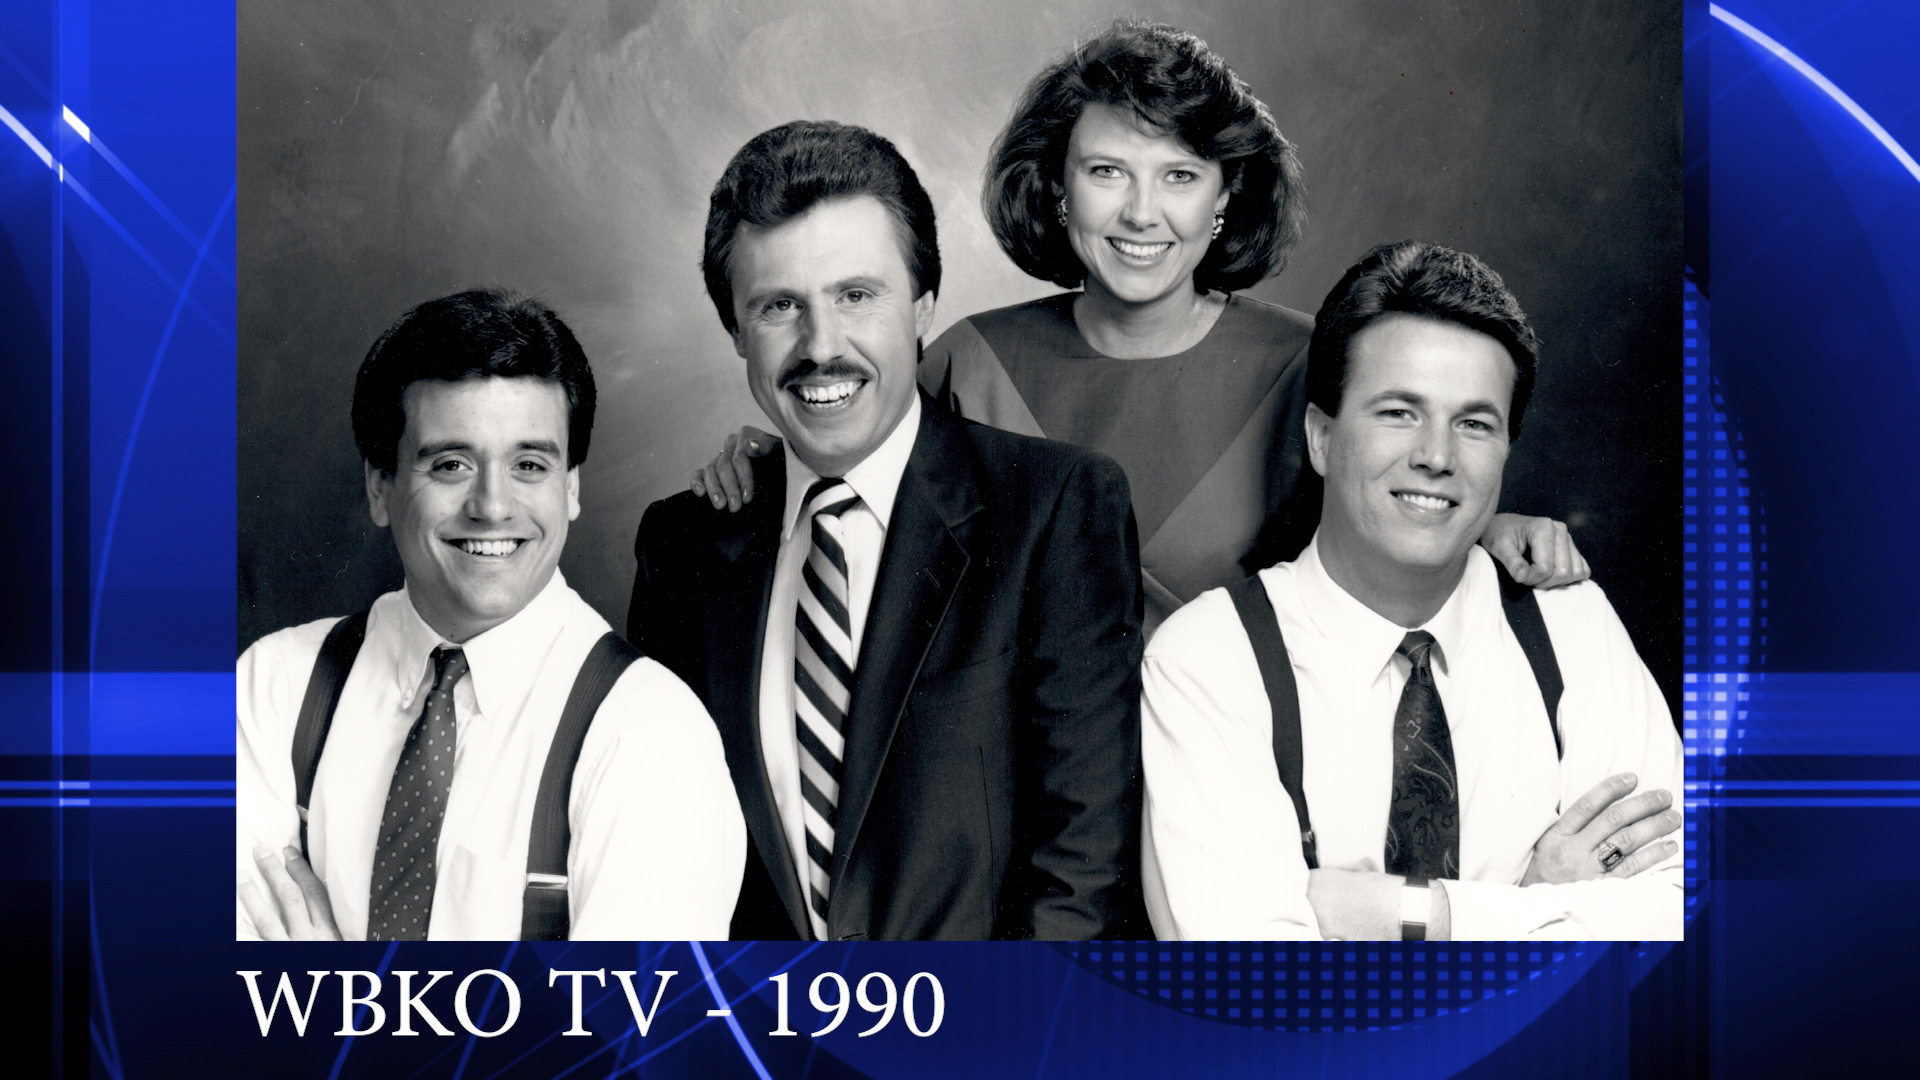 WBKO 1990 - 1st Big Job